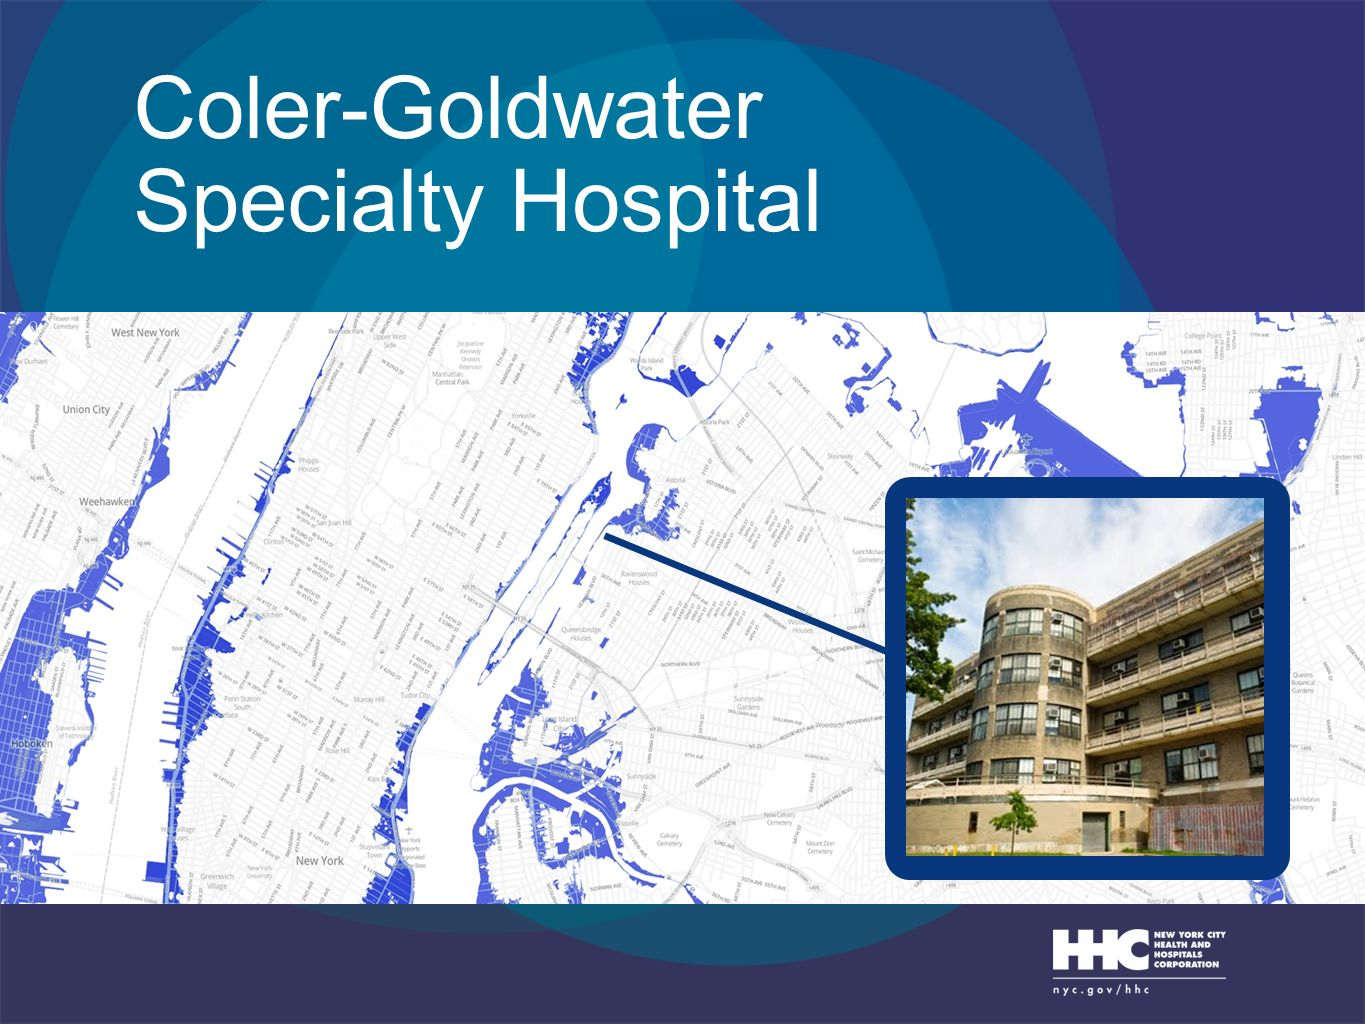 Coler-Goldwater Specialty Hospital